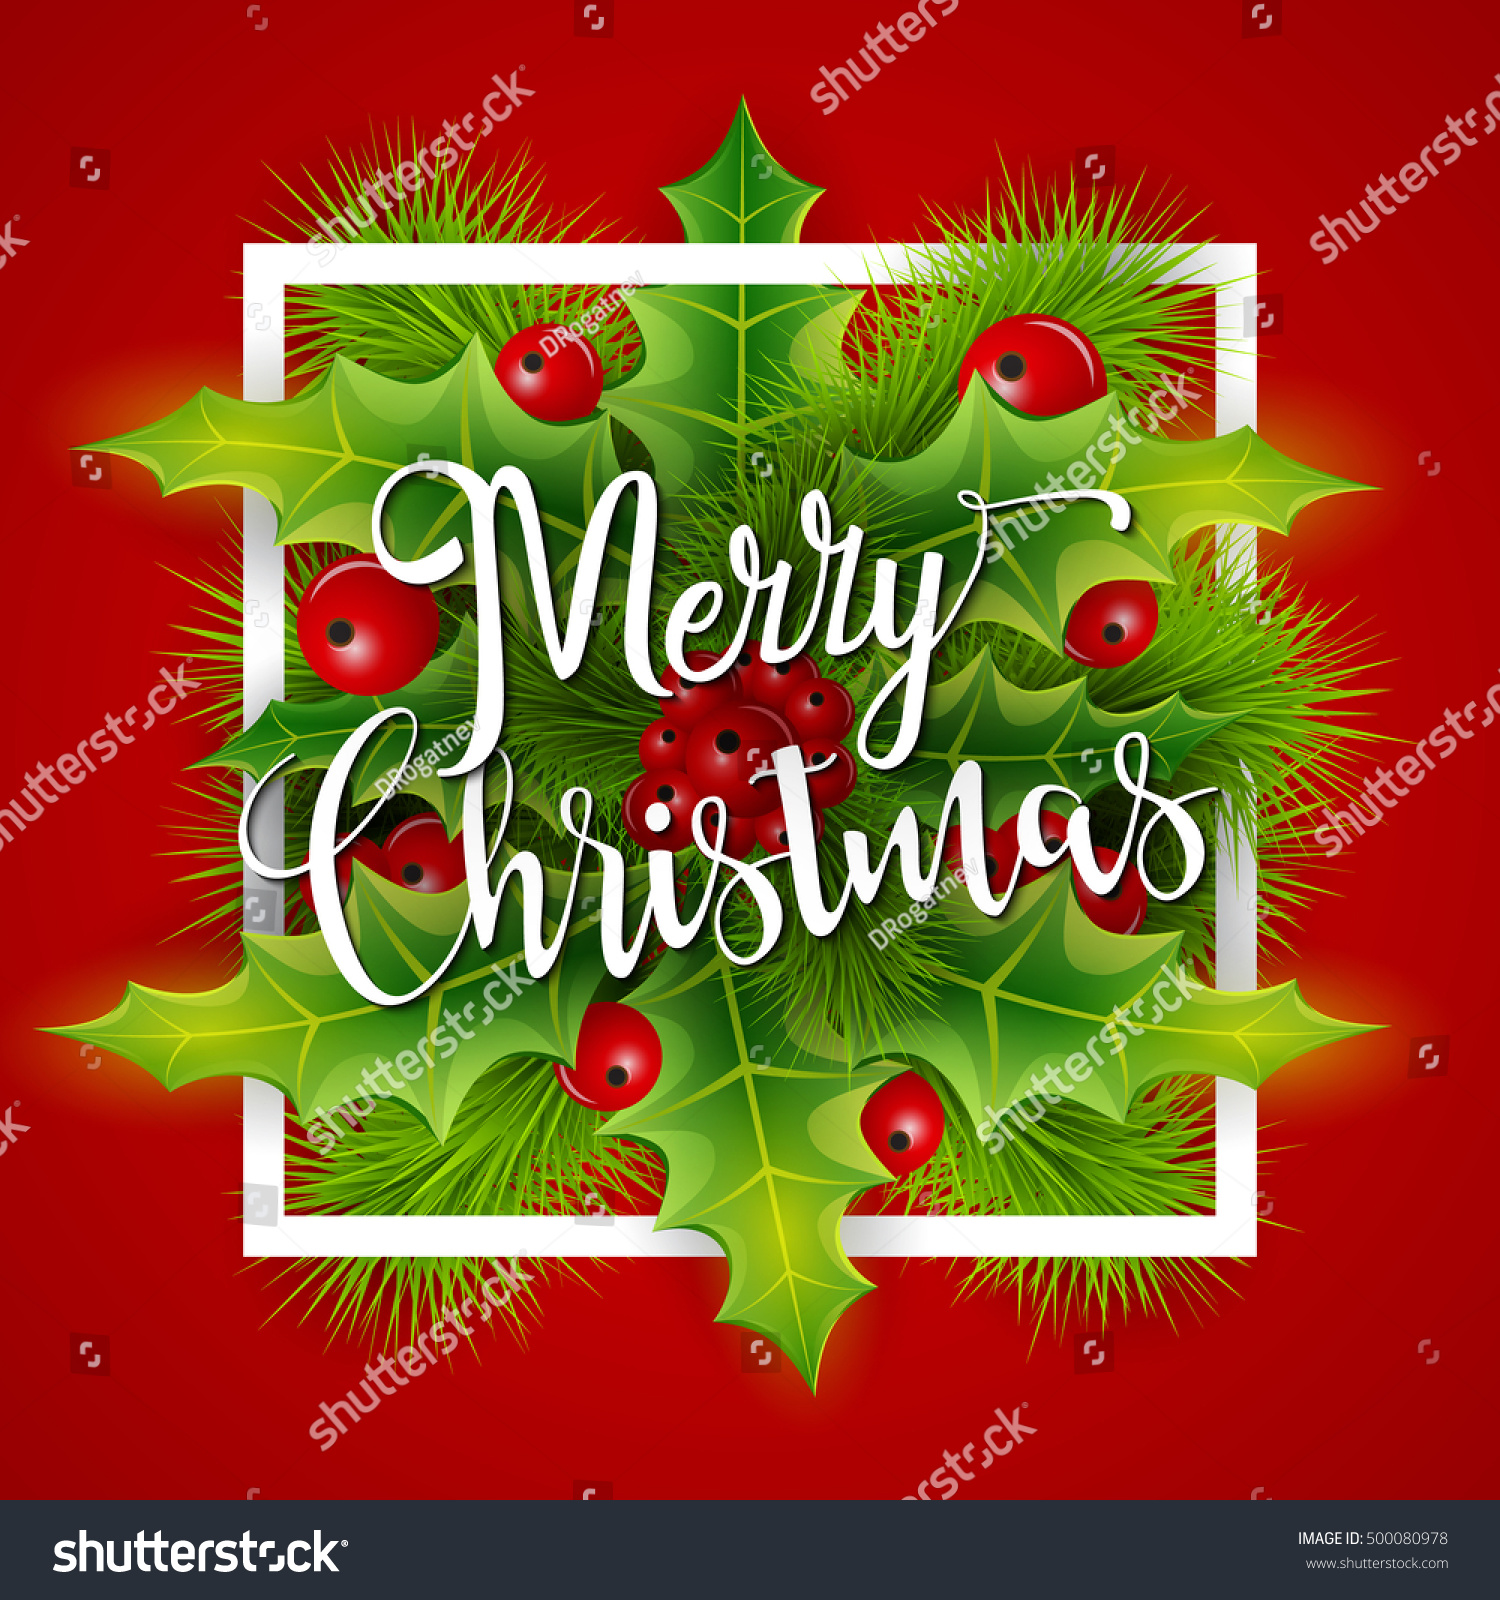 Merry christmas greetings card christmas holly stock vector merry christmas greetings card with christmas holly christmas and new year background for your design m4hsunfo